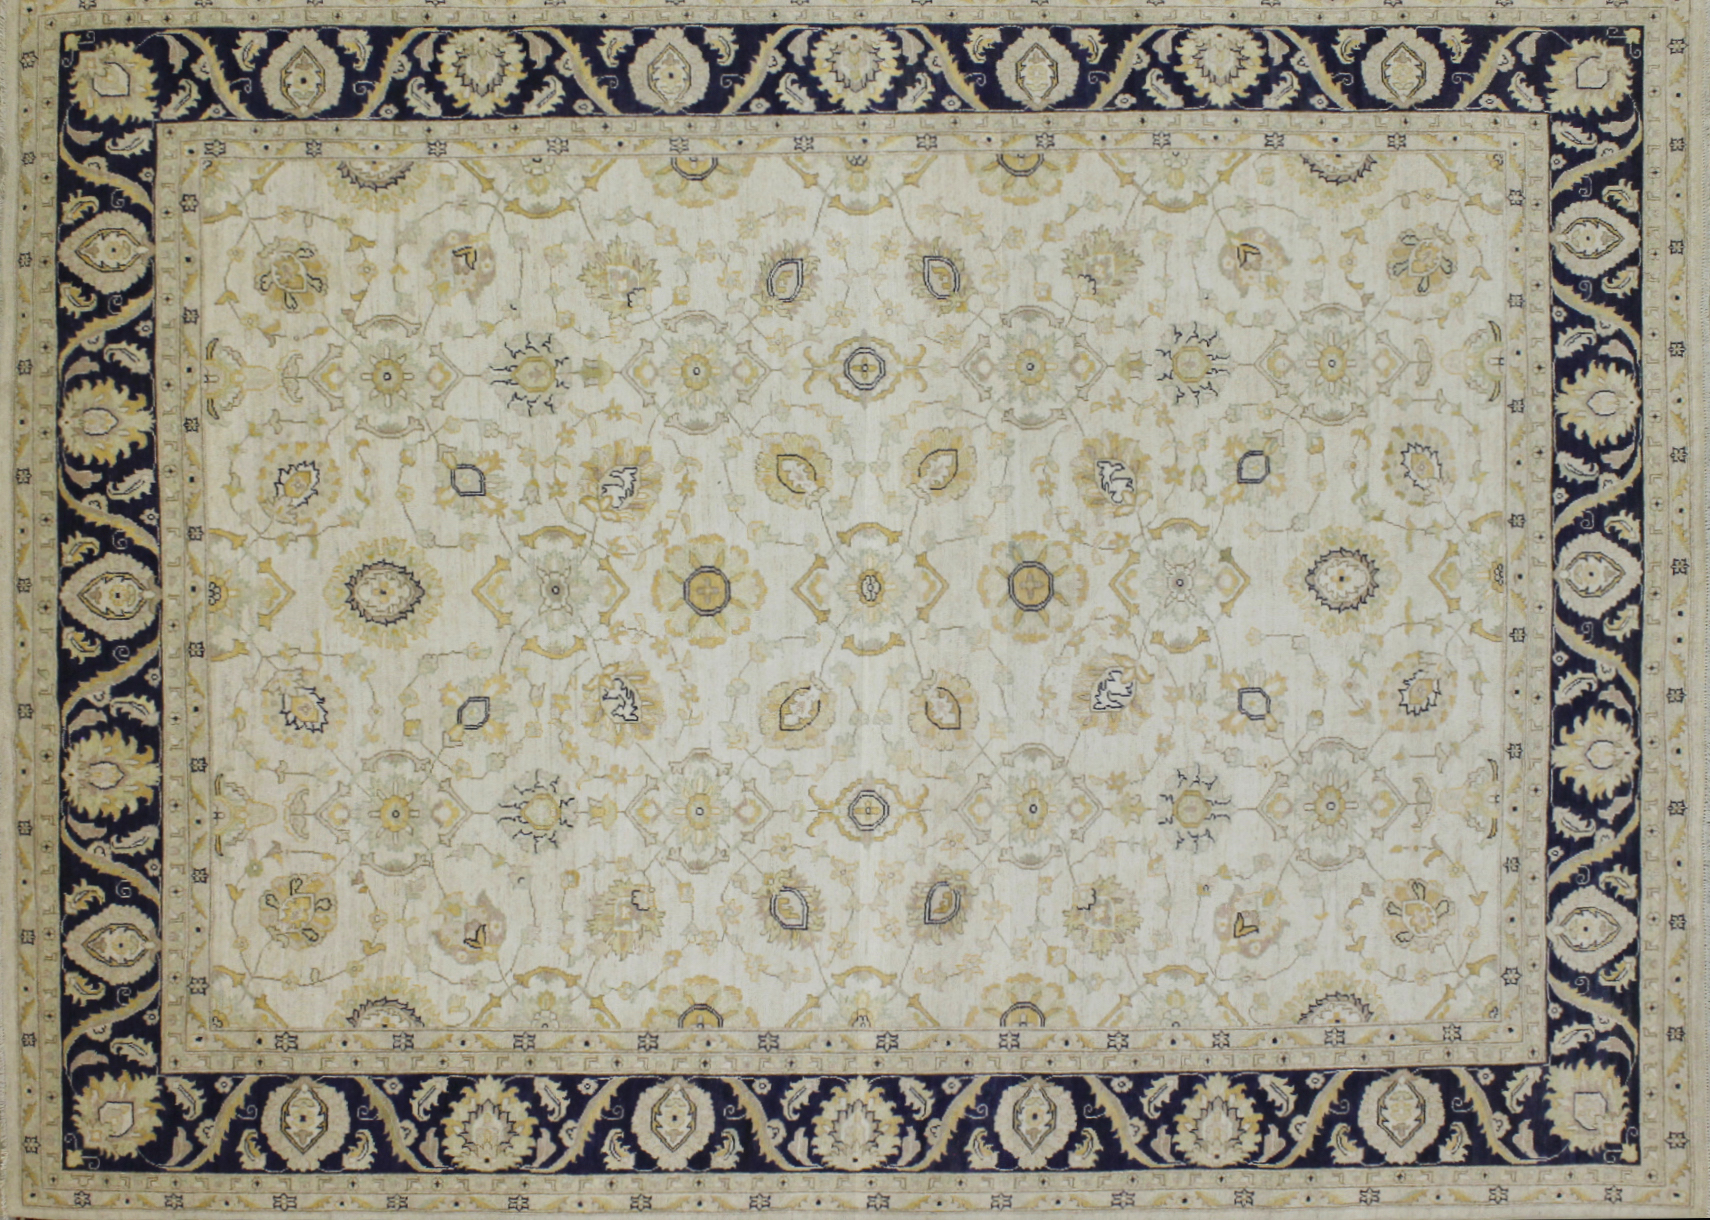 9x12 Peshawar Hand Knotted Wool Area Rug - MR022578